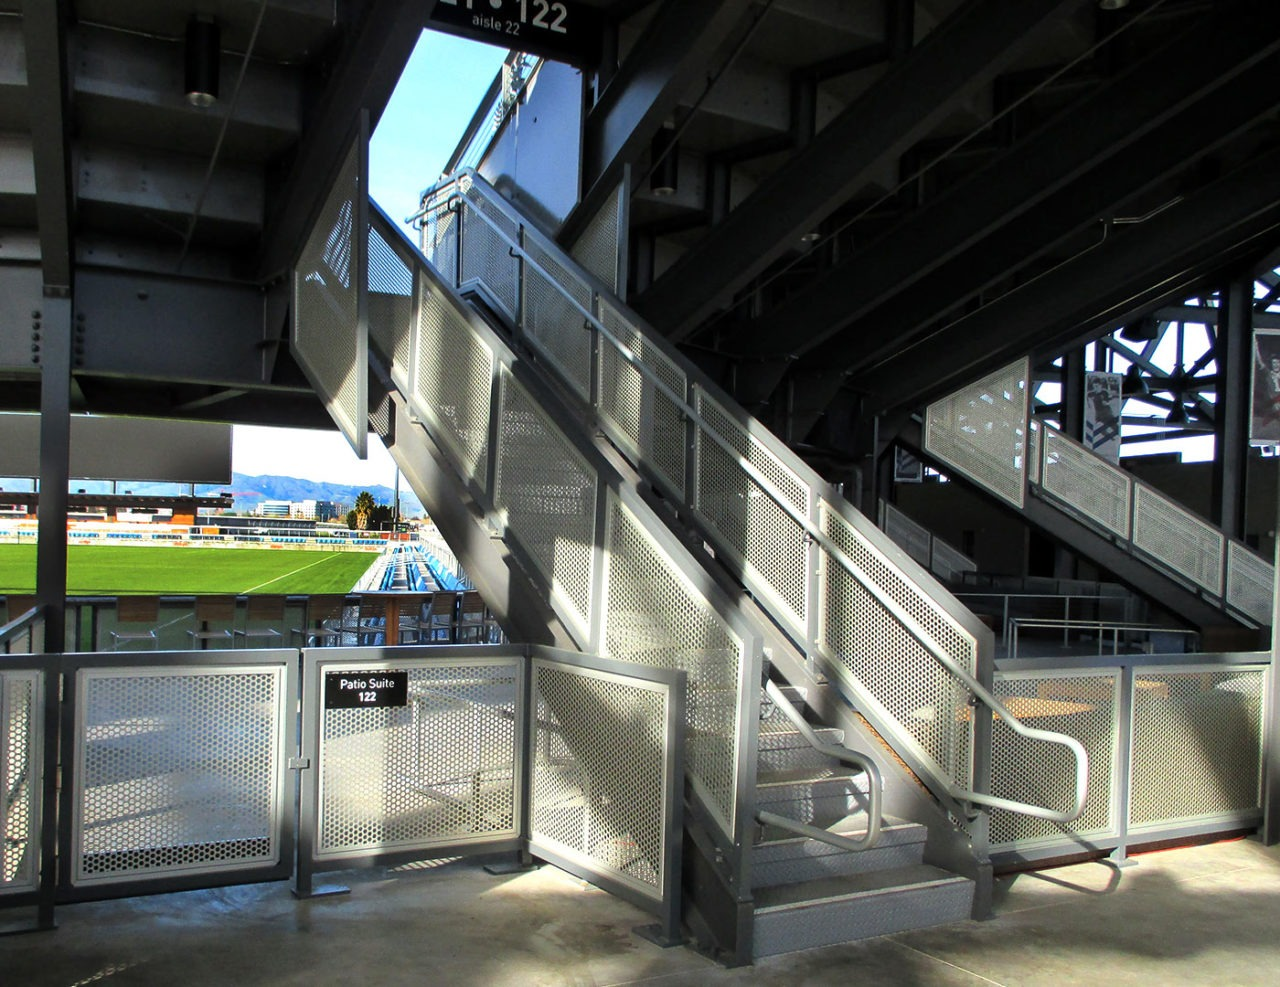 MLS Stadium patio suite areas